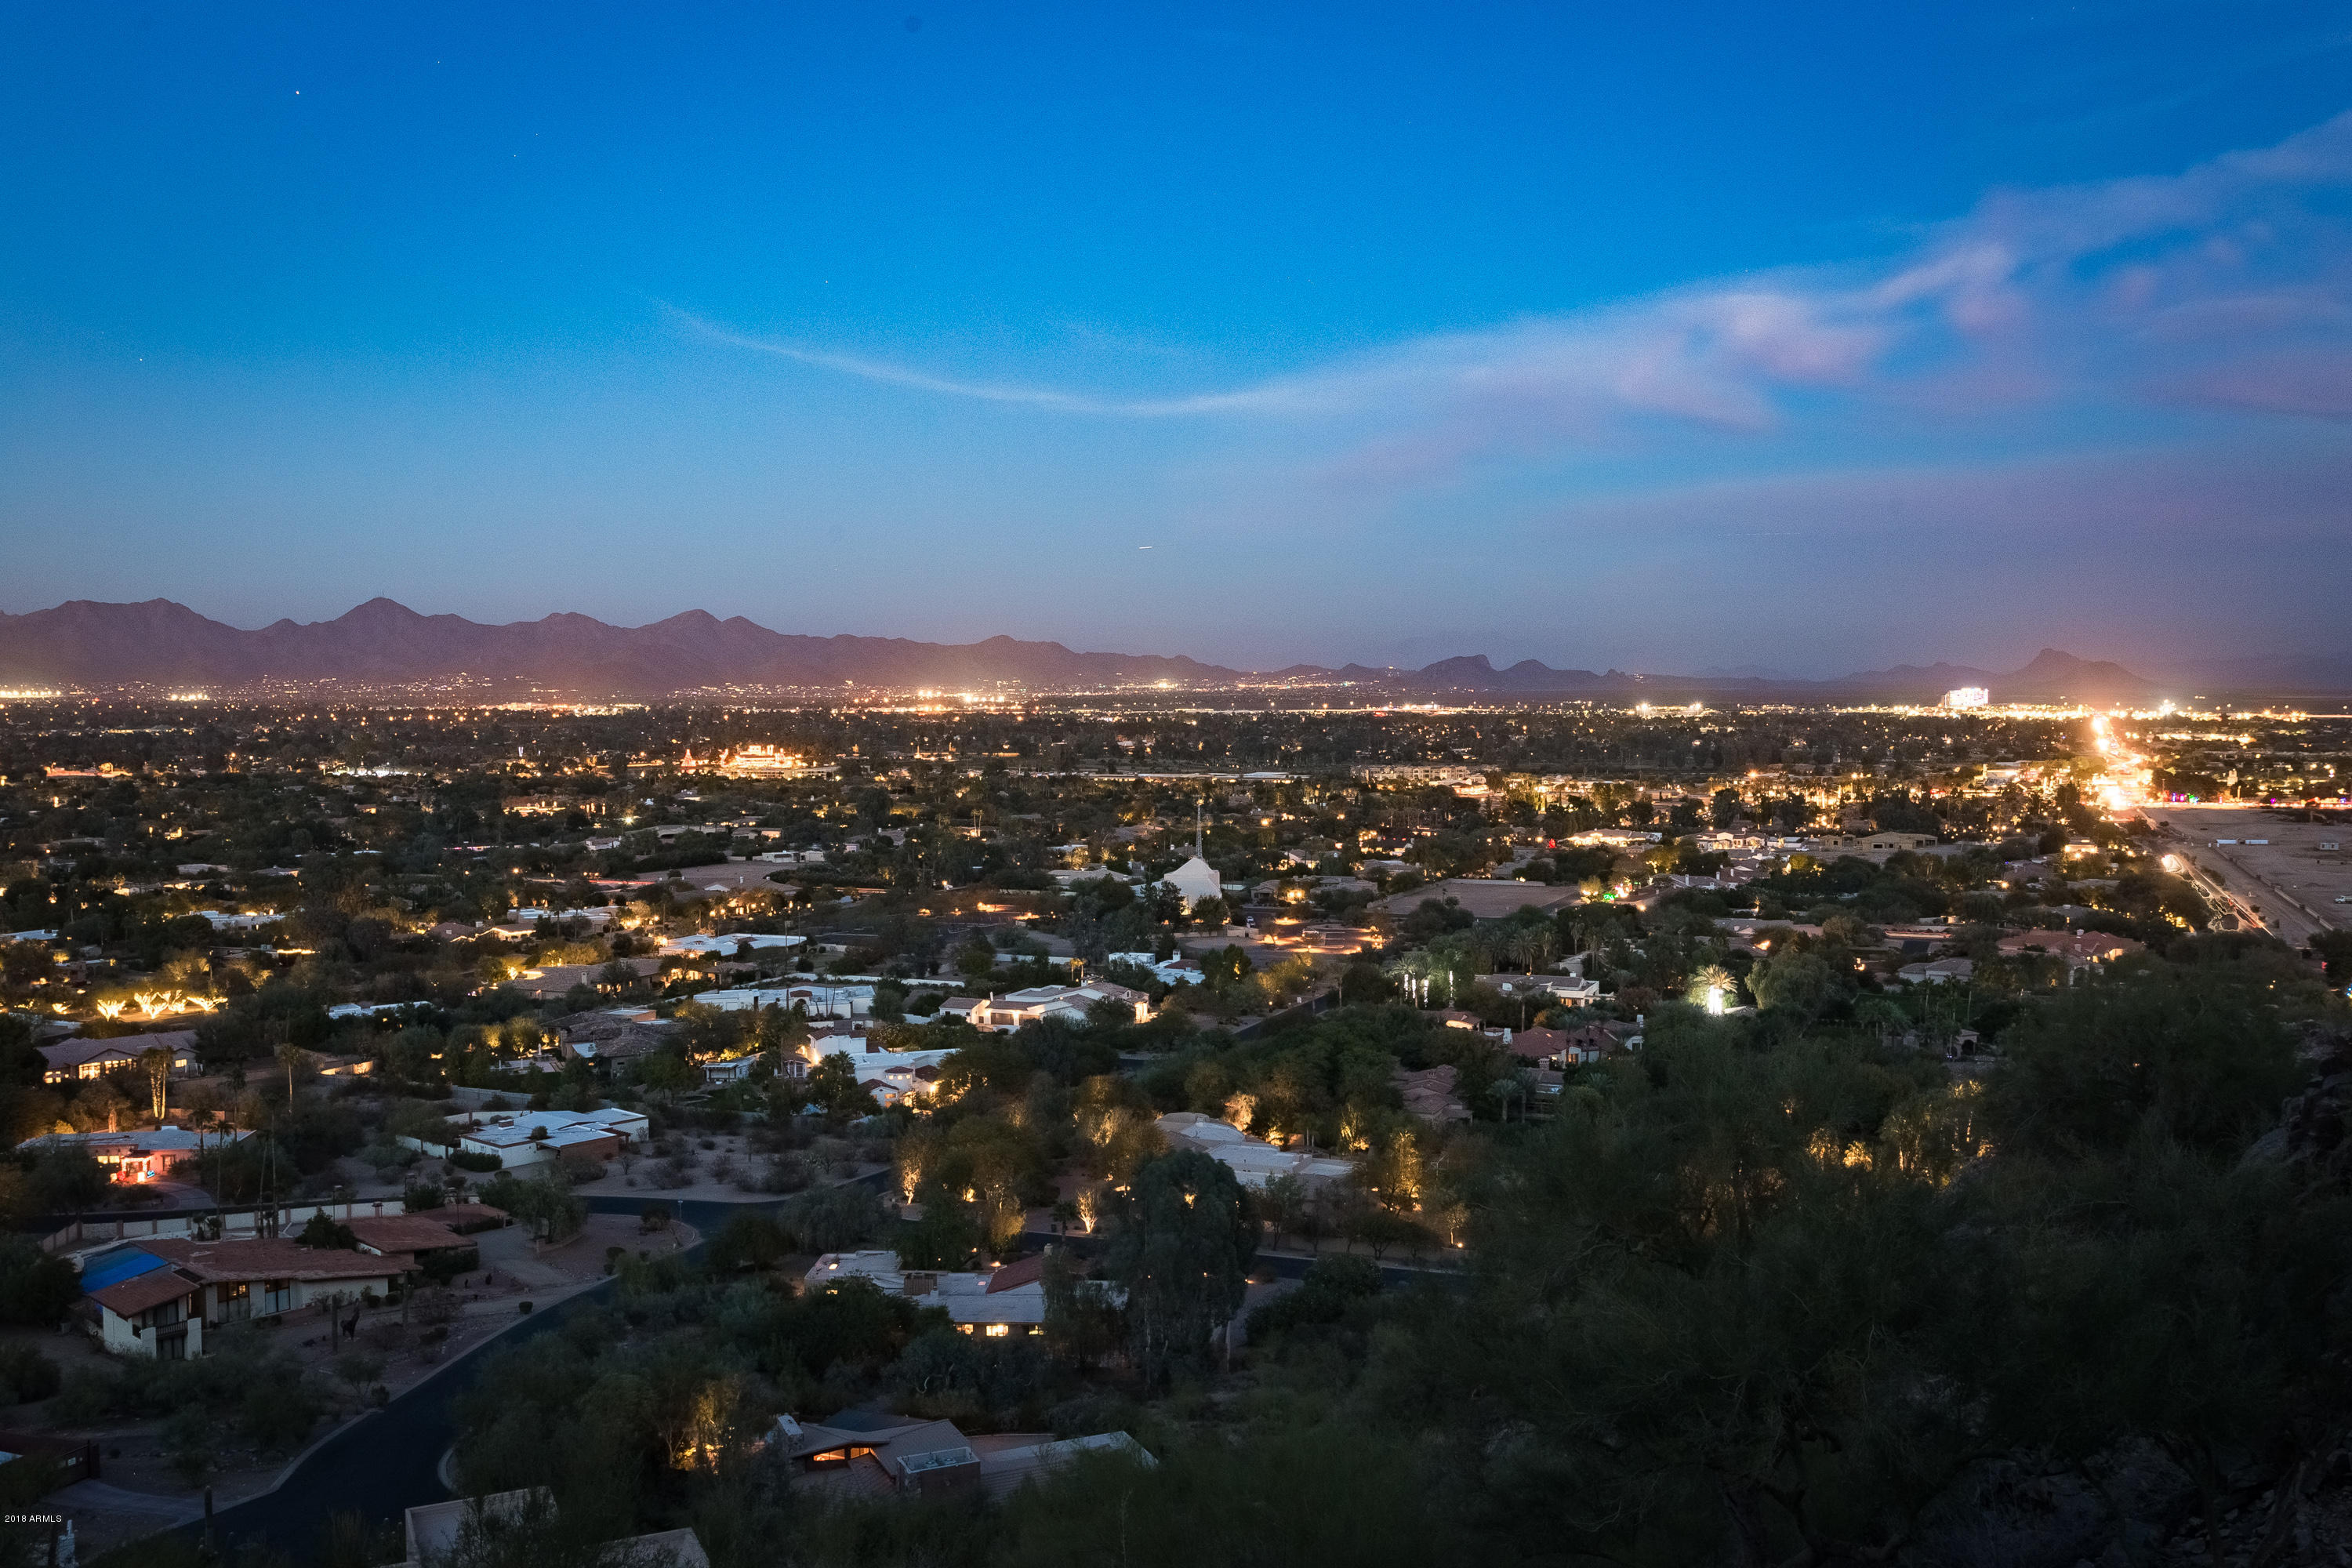 MLS 5692450 7011 N INVERGORDON Road, Paradise Valley, AZ 85253 Paradise Valley